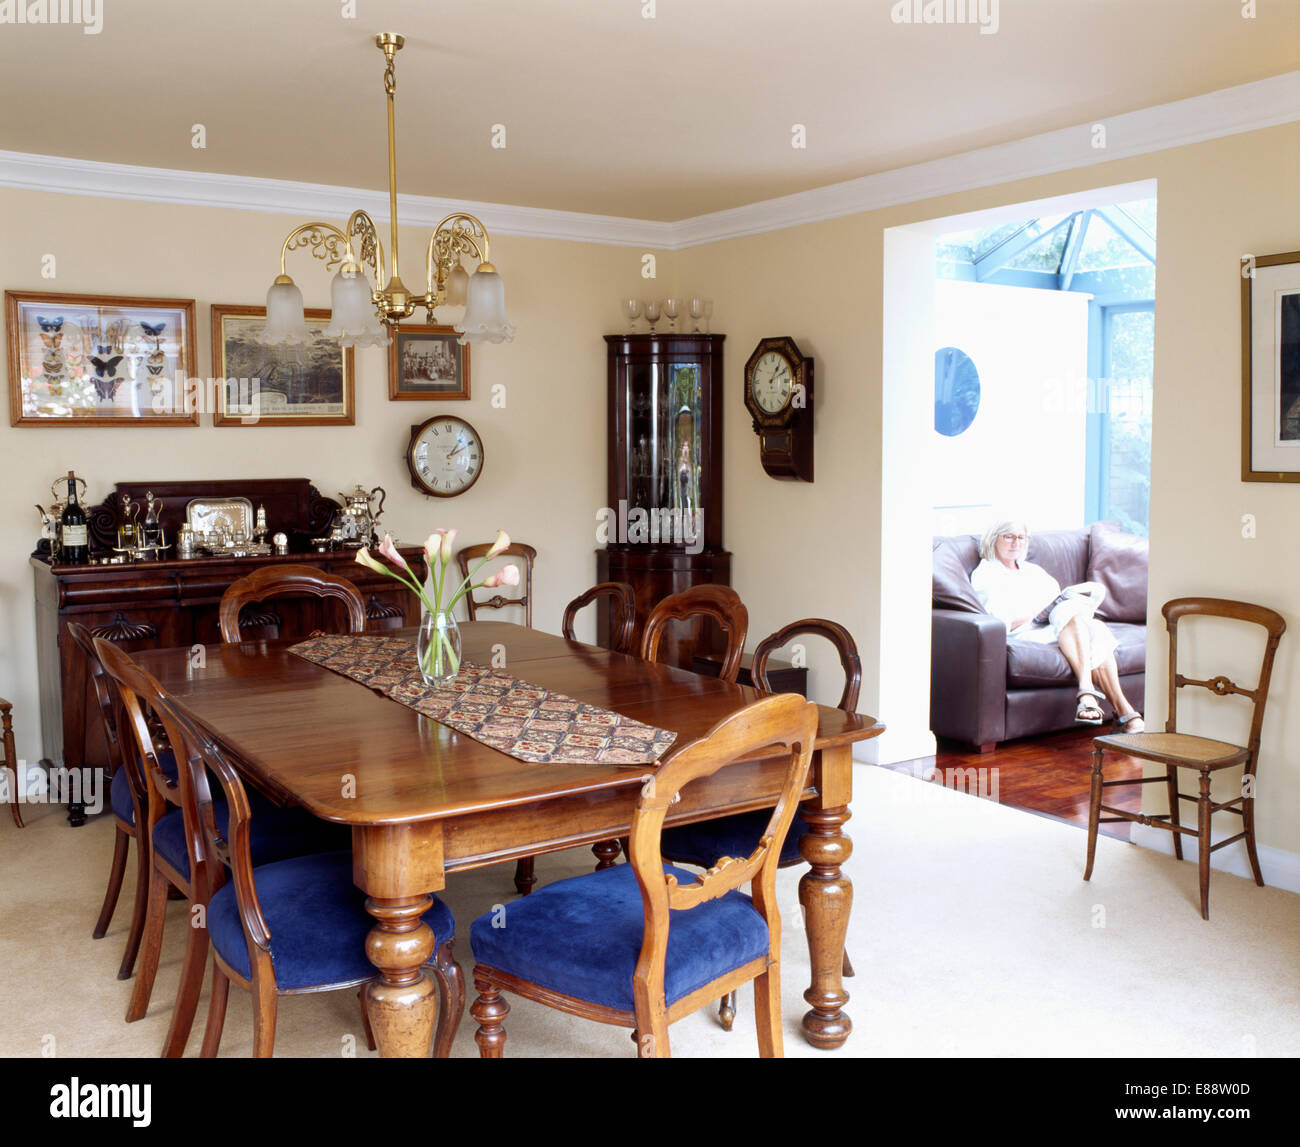 Victorian Balloon Back Chairs And Mahogany Table In Dining Room With White  Carpet And Doorway To Living Room Extension